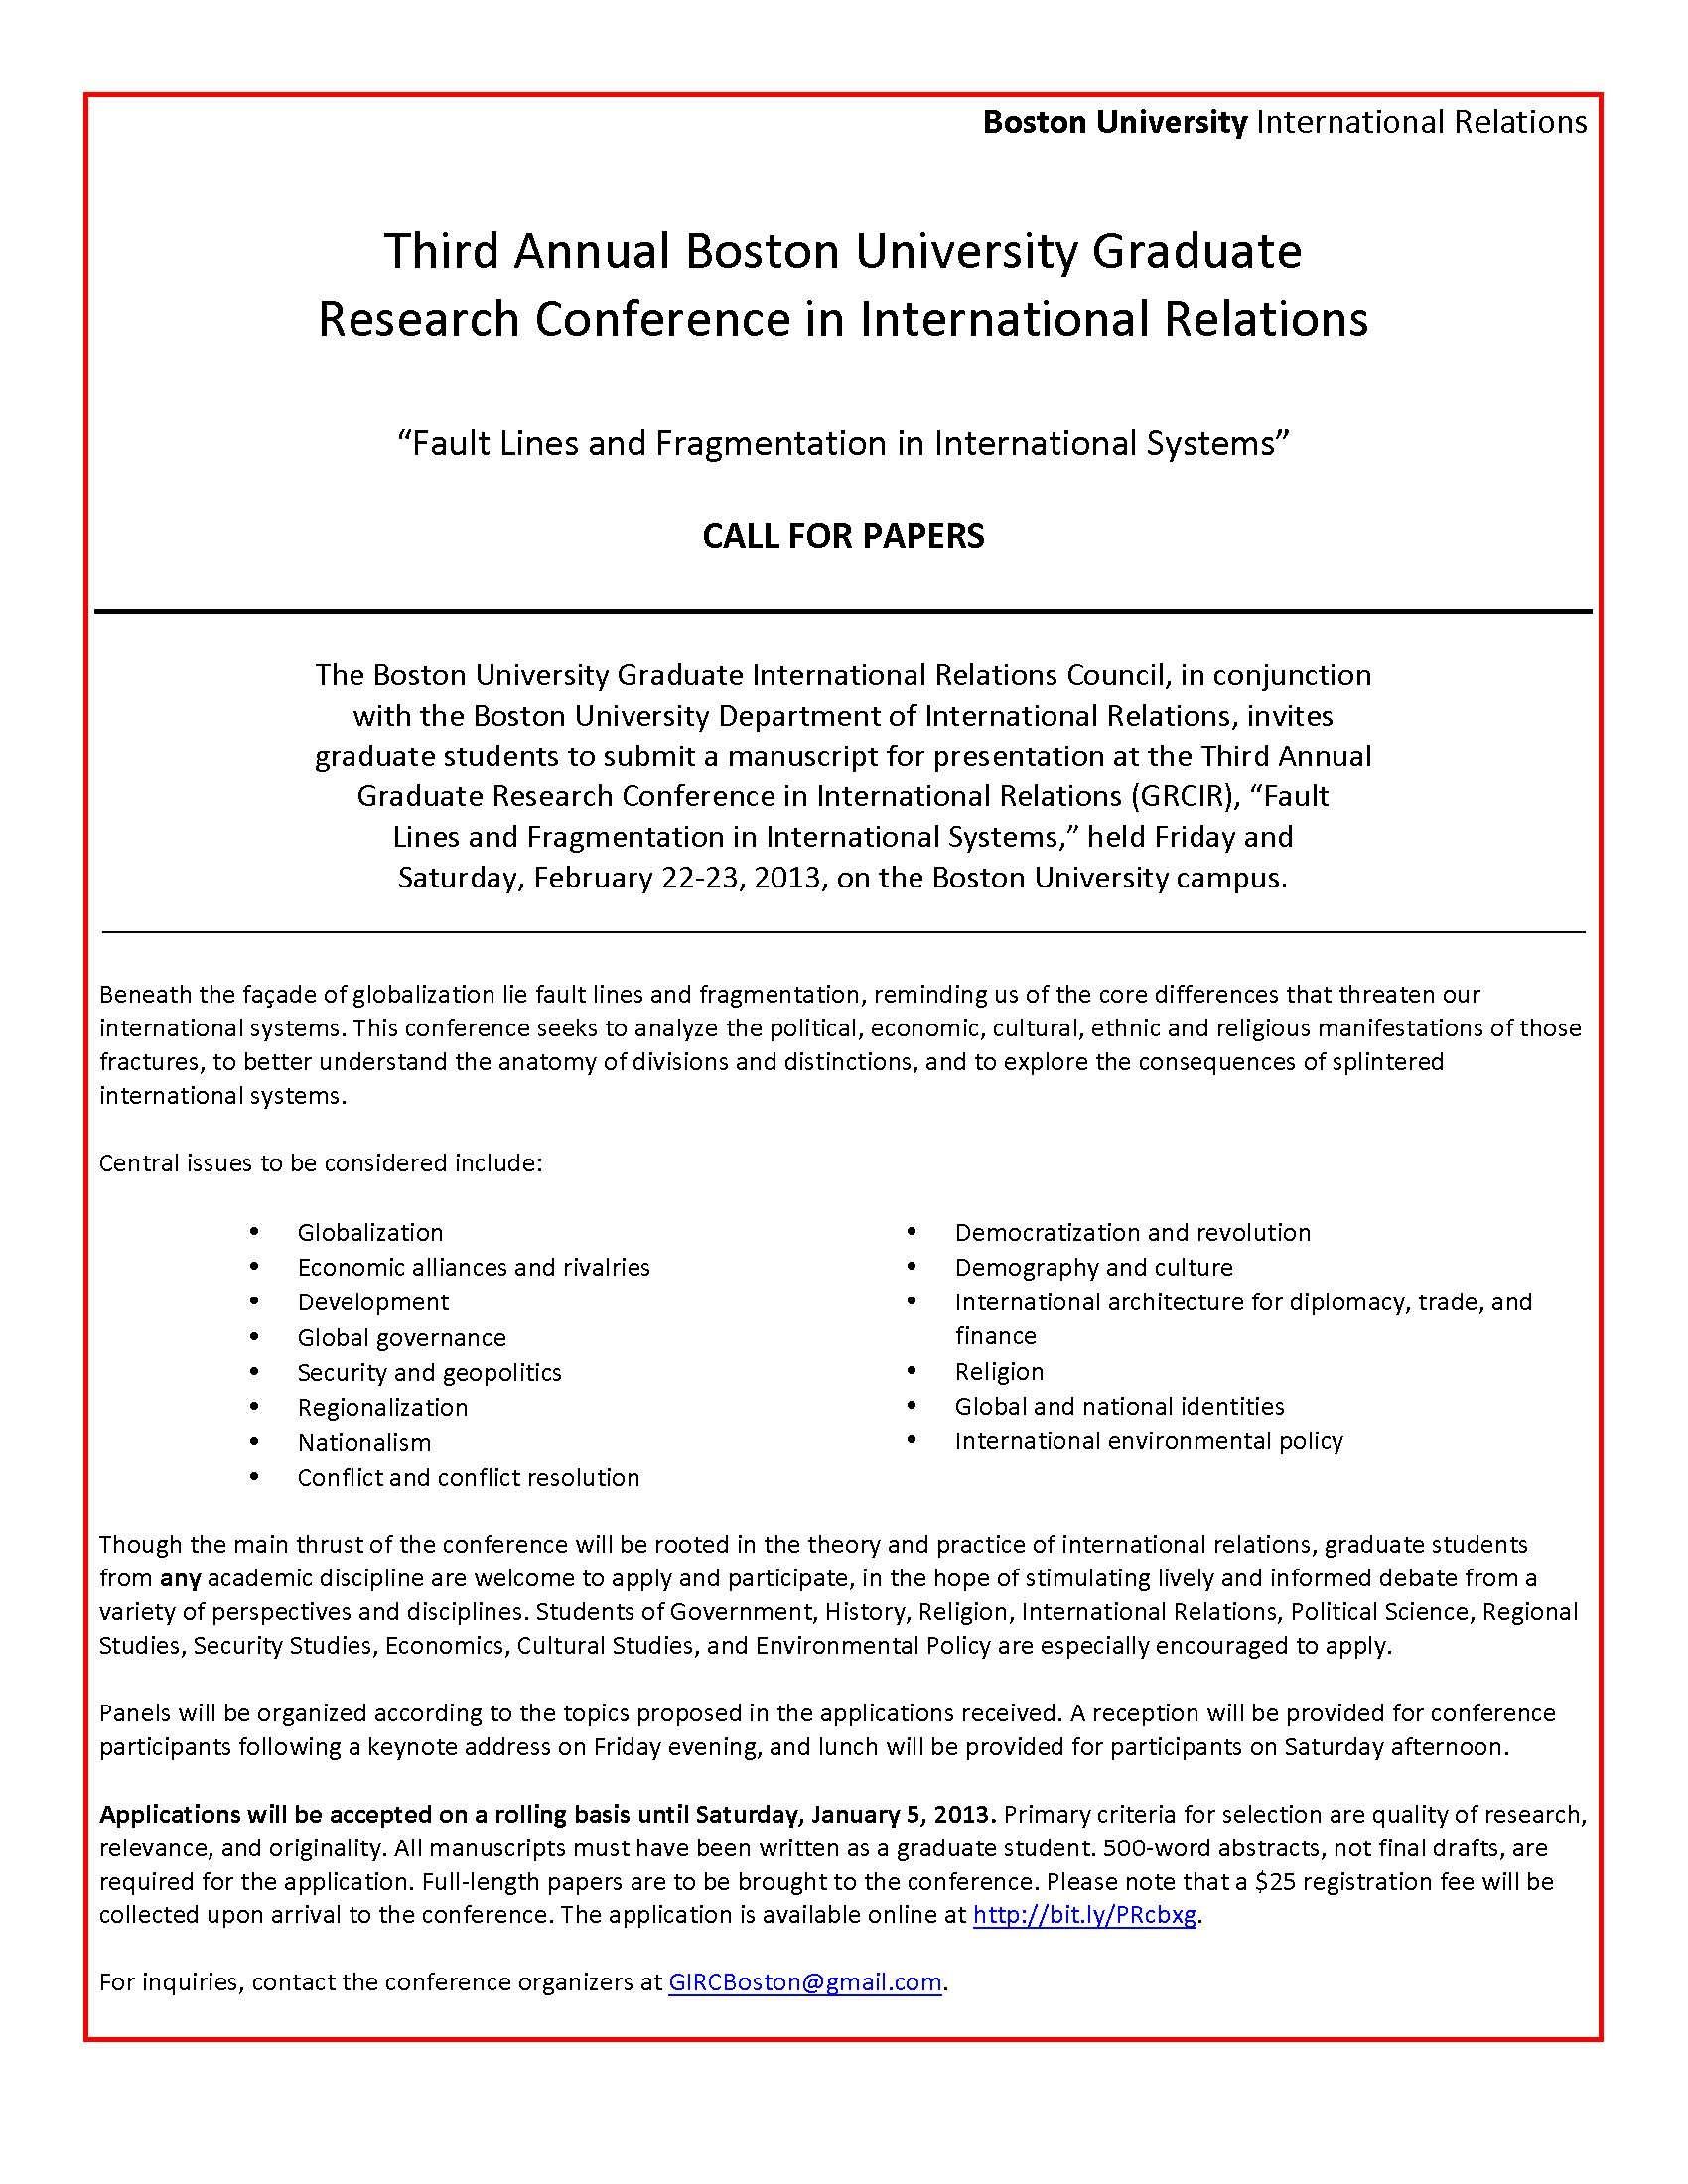 Call For Papers Graduate Research Conference In